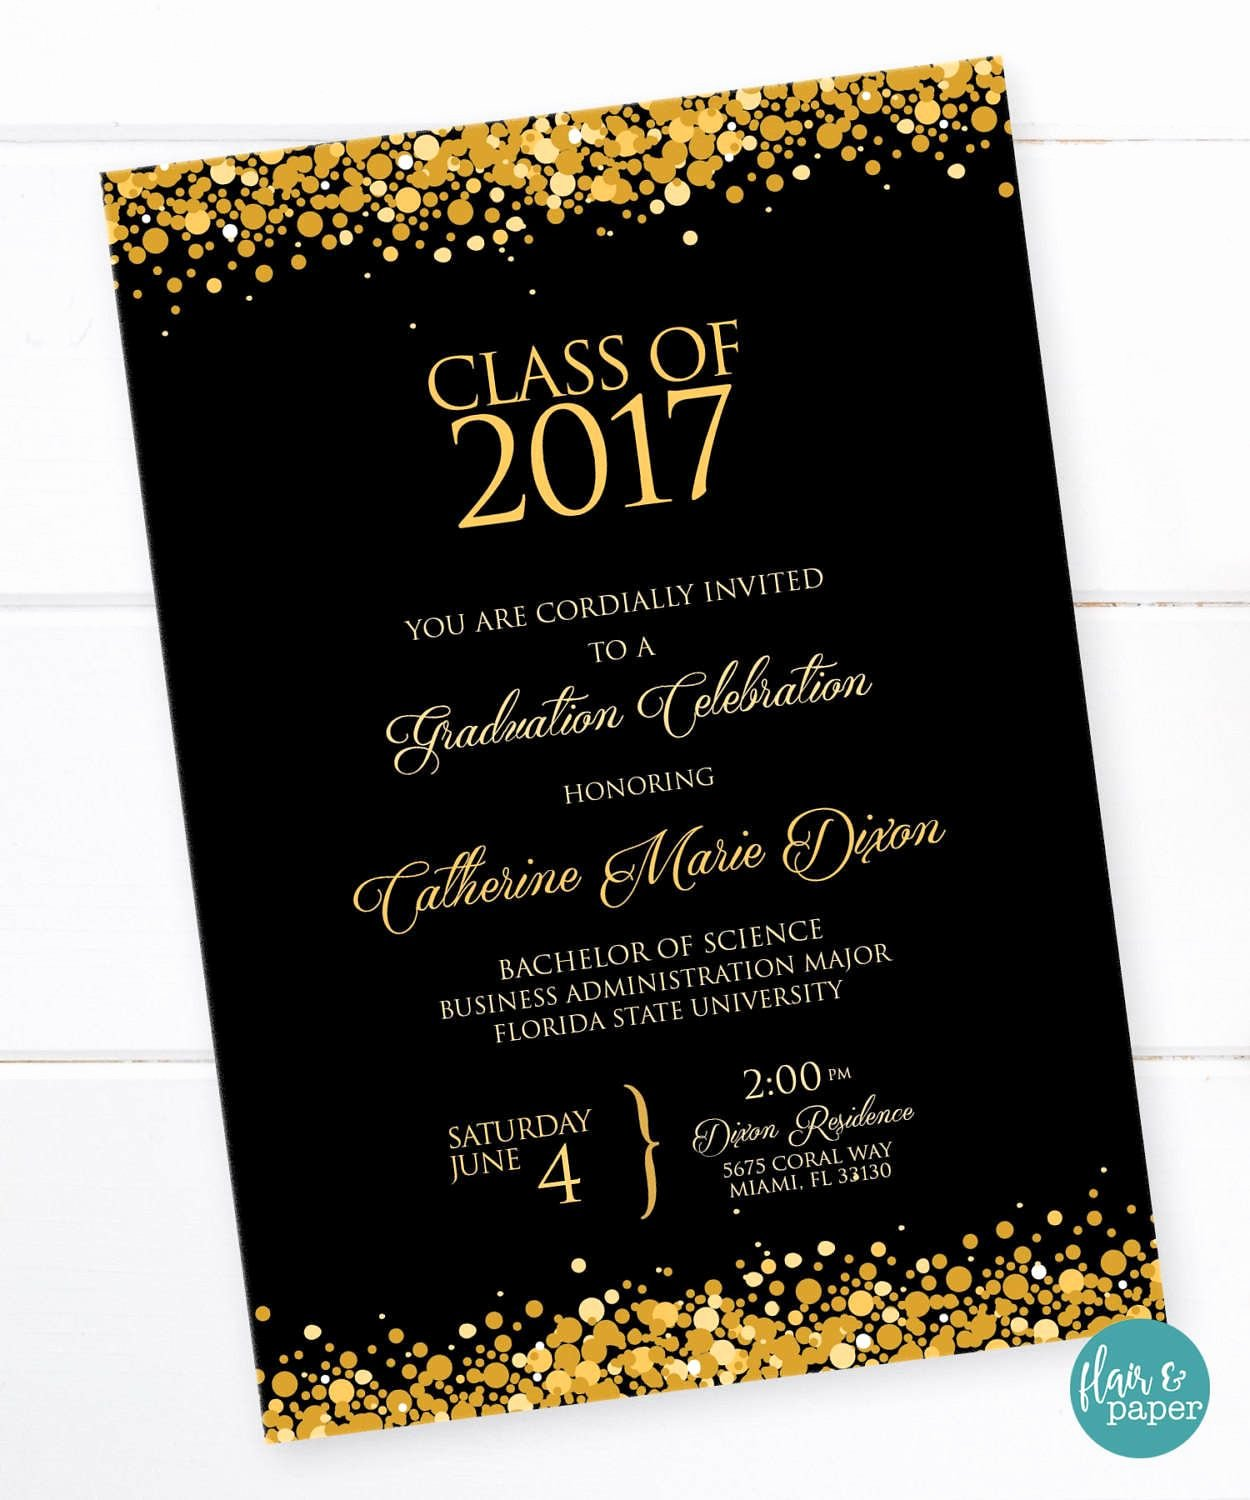 Graduation Invitation Cards Free Elegant Graduation Invitation Graduation Celebration College